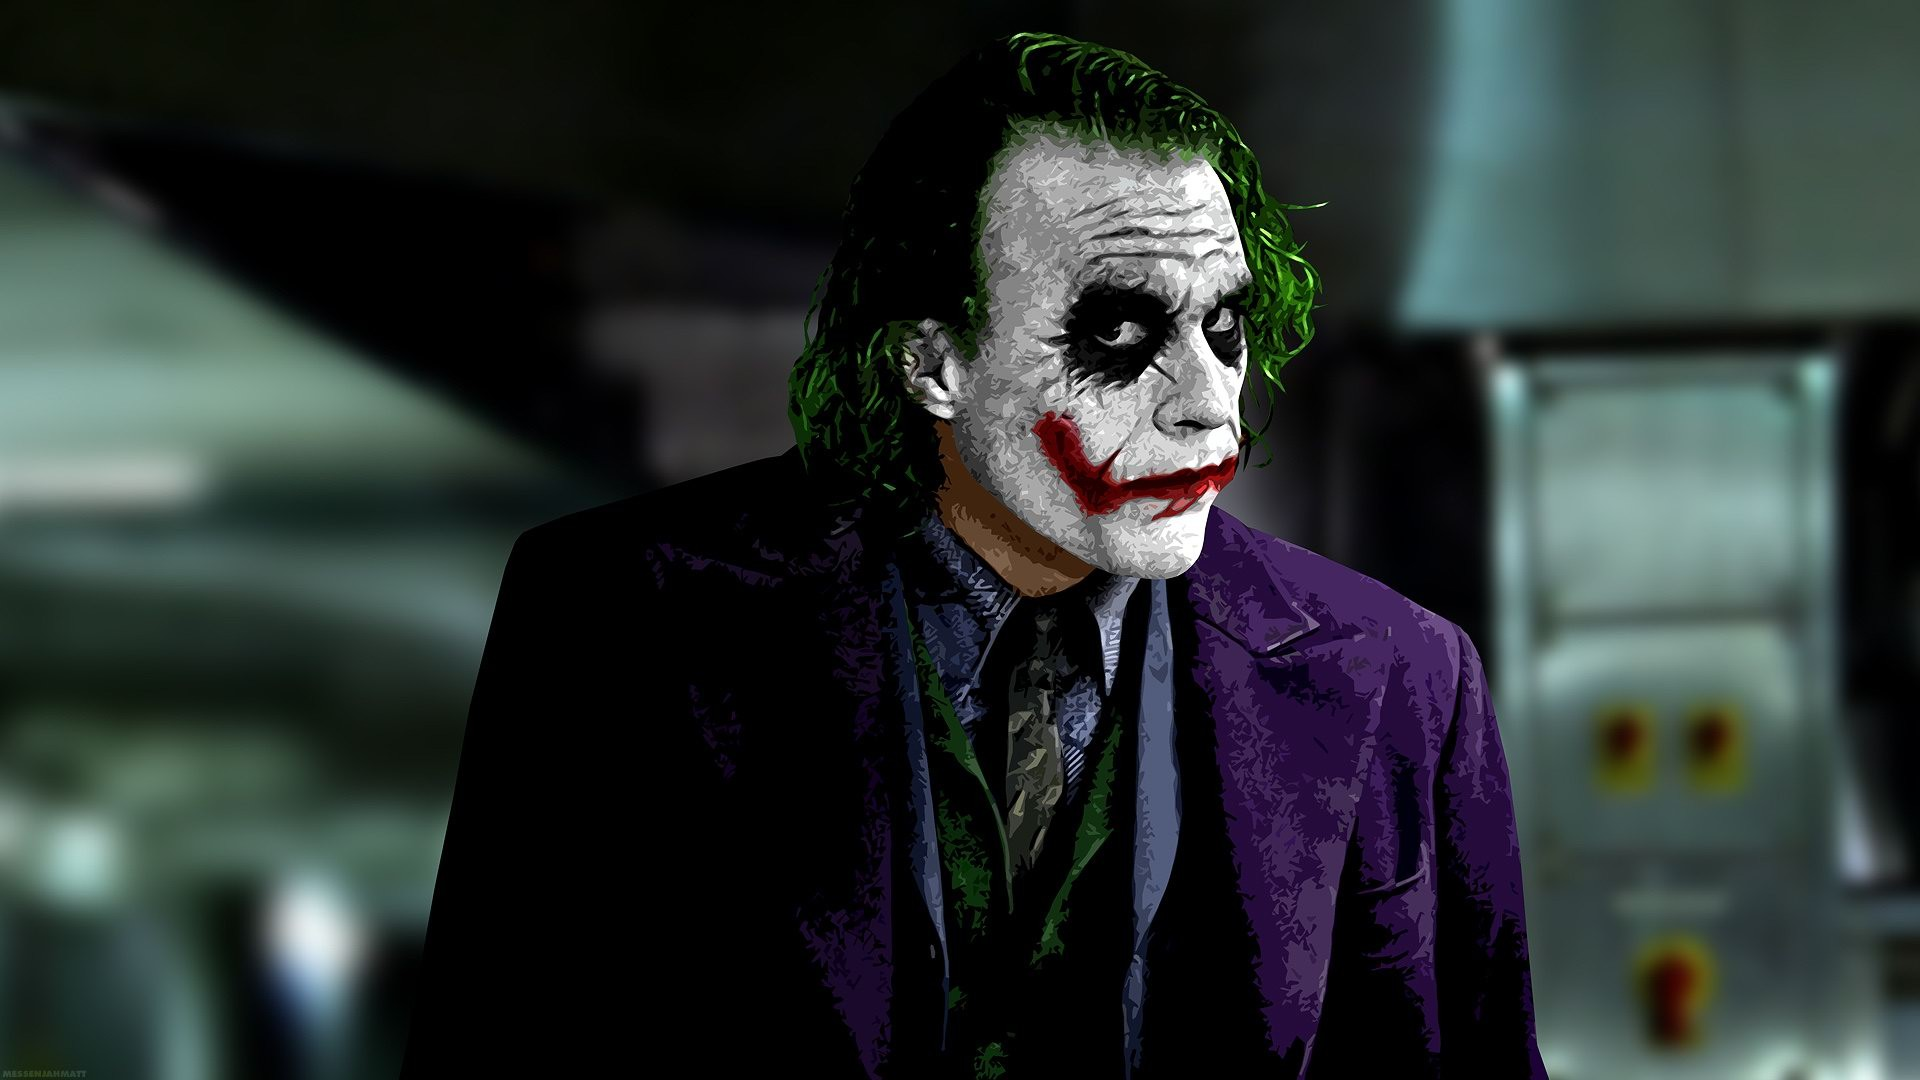 Joker Heath Ledger Hd Wallpaper - Shoutot net